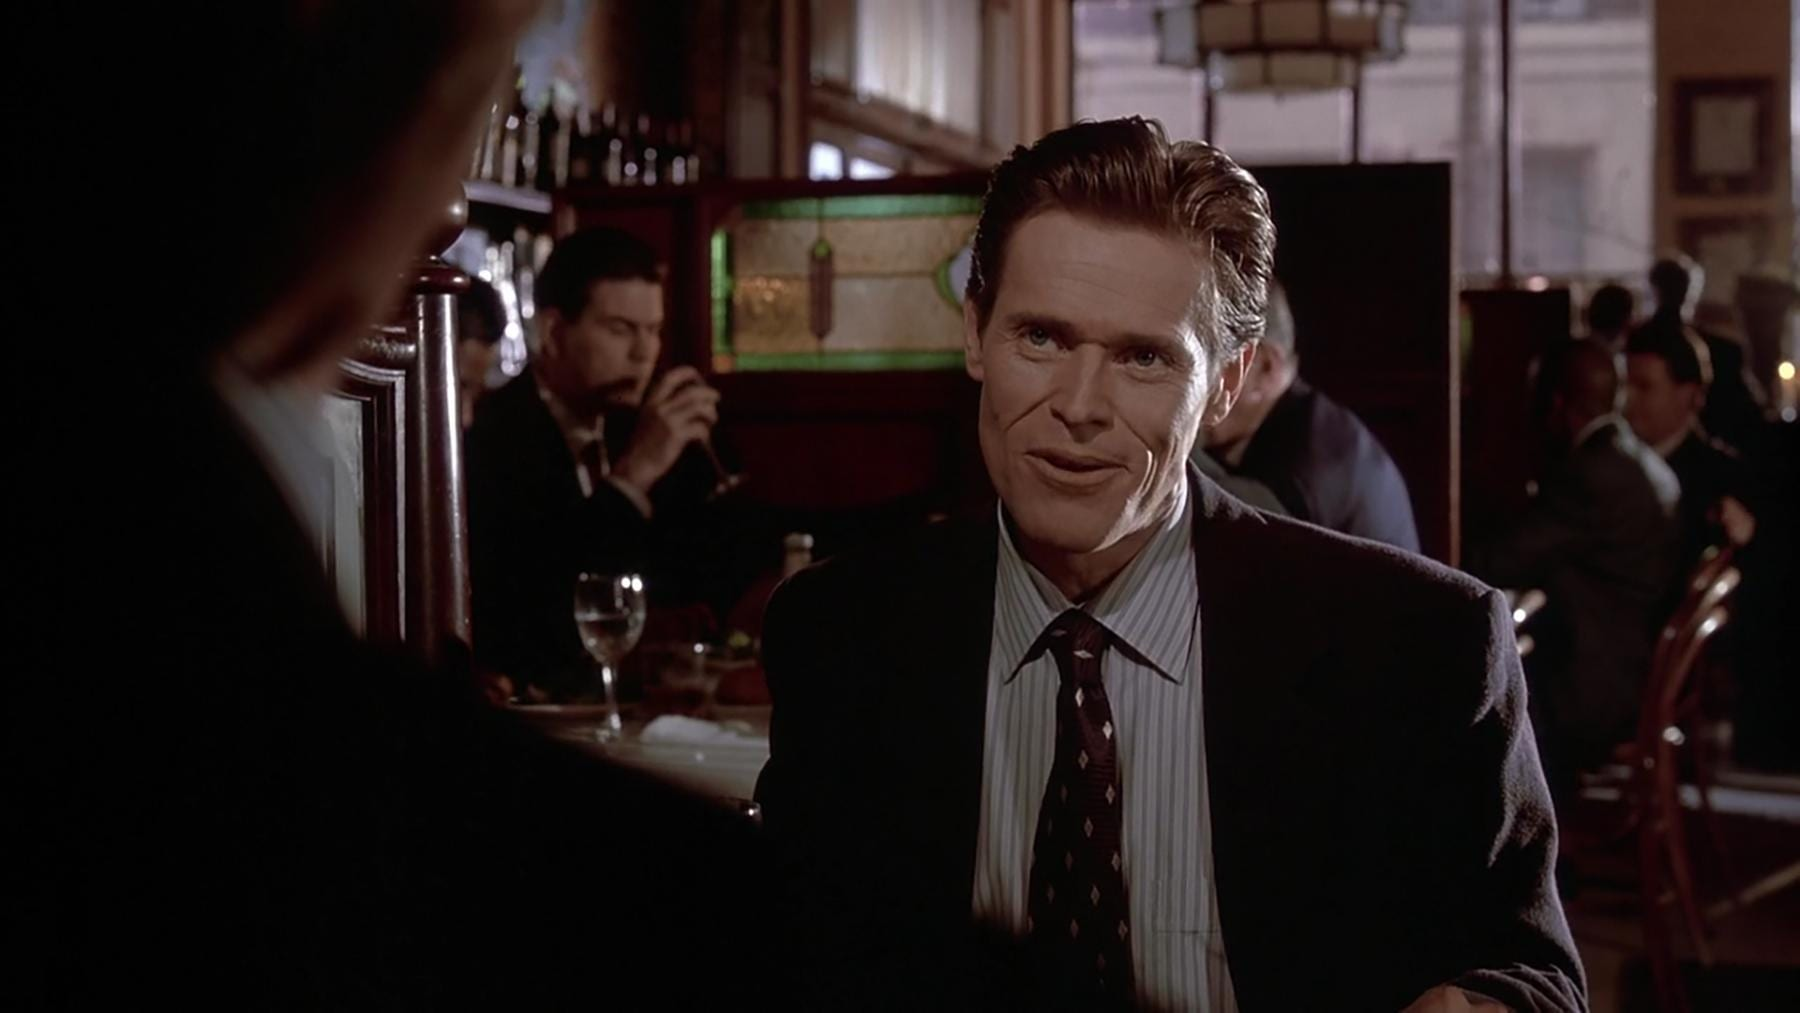 Where To Watch American Psycho?Where To Watch American Psycho?